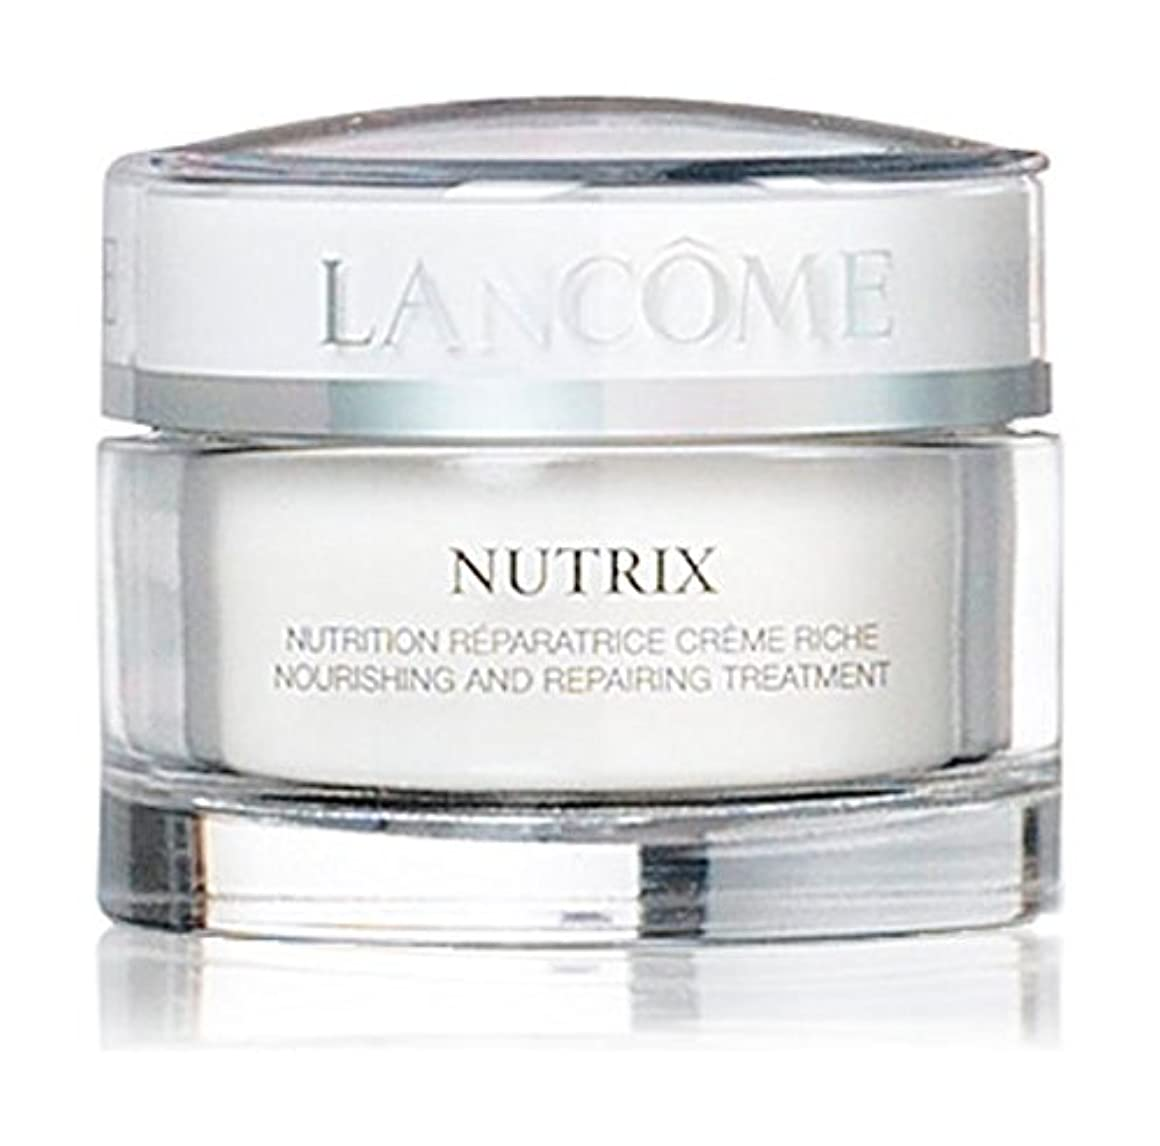 電圧降ろすシチリアランコム Nutrix Nourishing And Repairing Treatment Rich Cream - For Very Dry, Sensitive Or Irritated Skin 50ml/1.7oz...